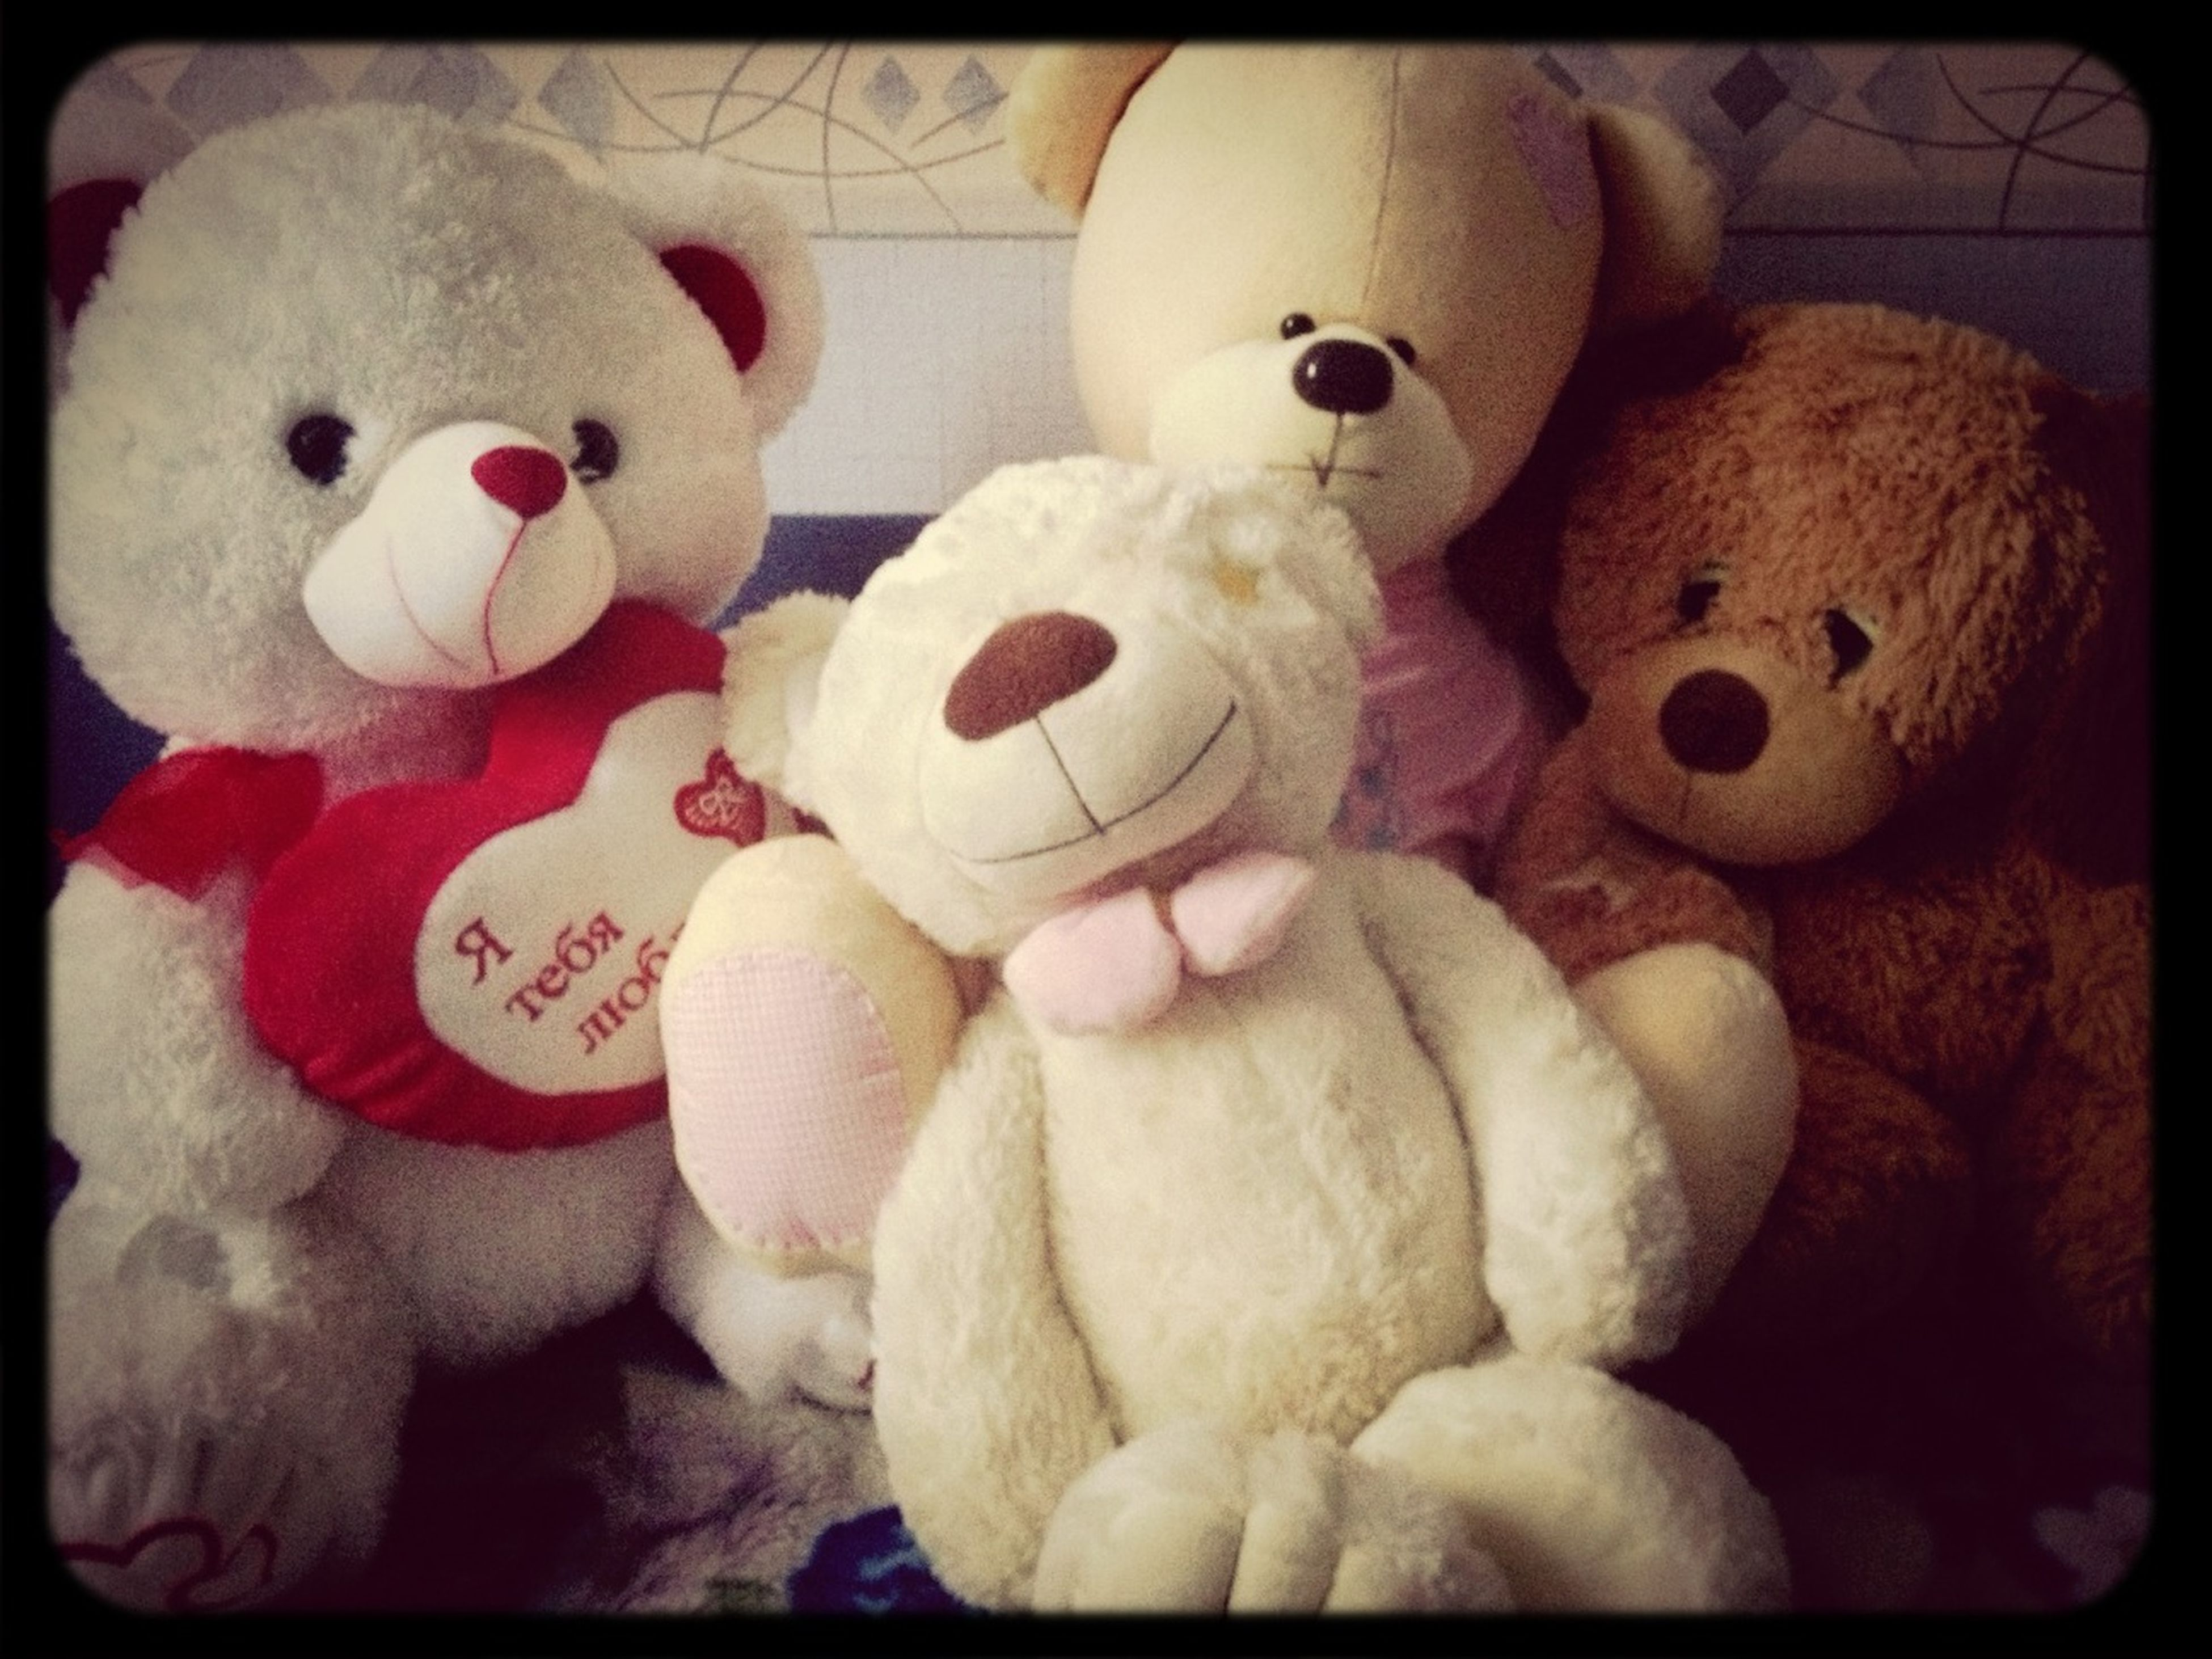 indoors, stuffed toy, toy, transfer print, still life, auto post production filter, animal representation, childhood, variation, teddy bear, multi colored, close-up, sweet food, art and craft, art, creativity, no people, human representation, choice, large group of objects